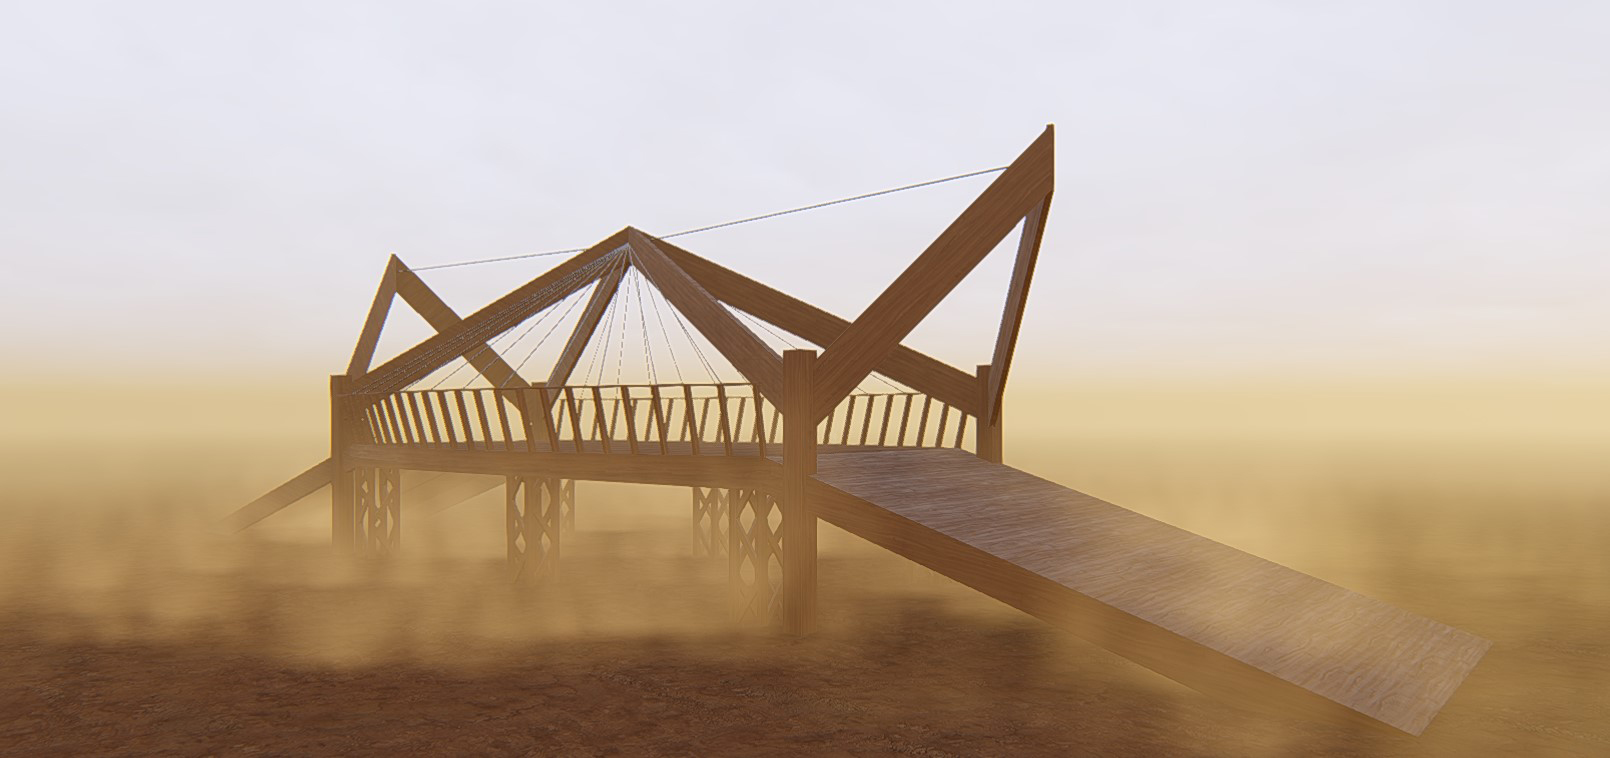 Burning Man Bridge Rendering